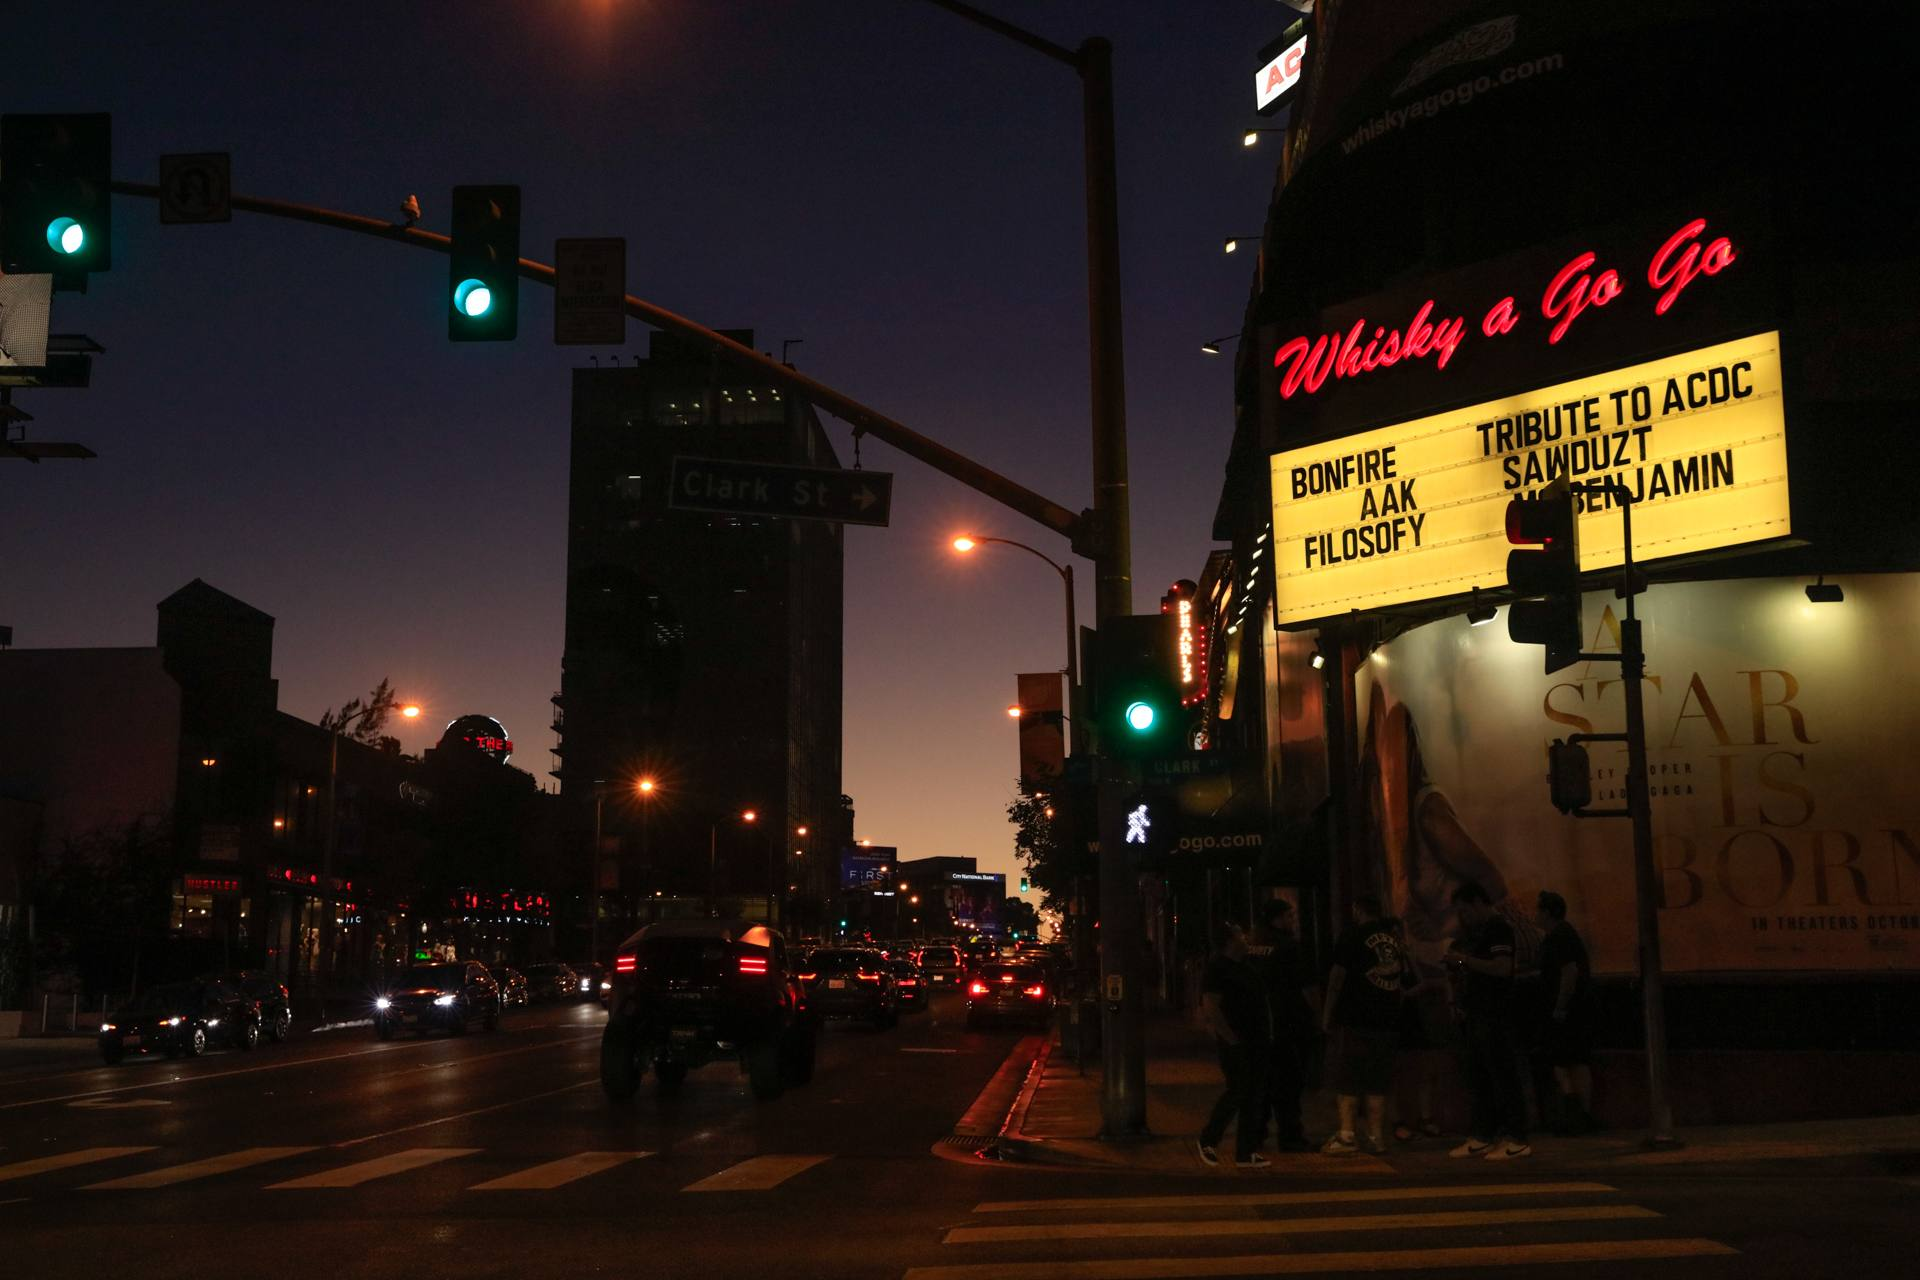 The Whisky A Go Go on the Sunset Strip